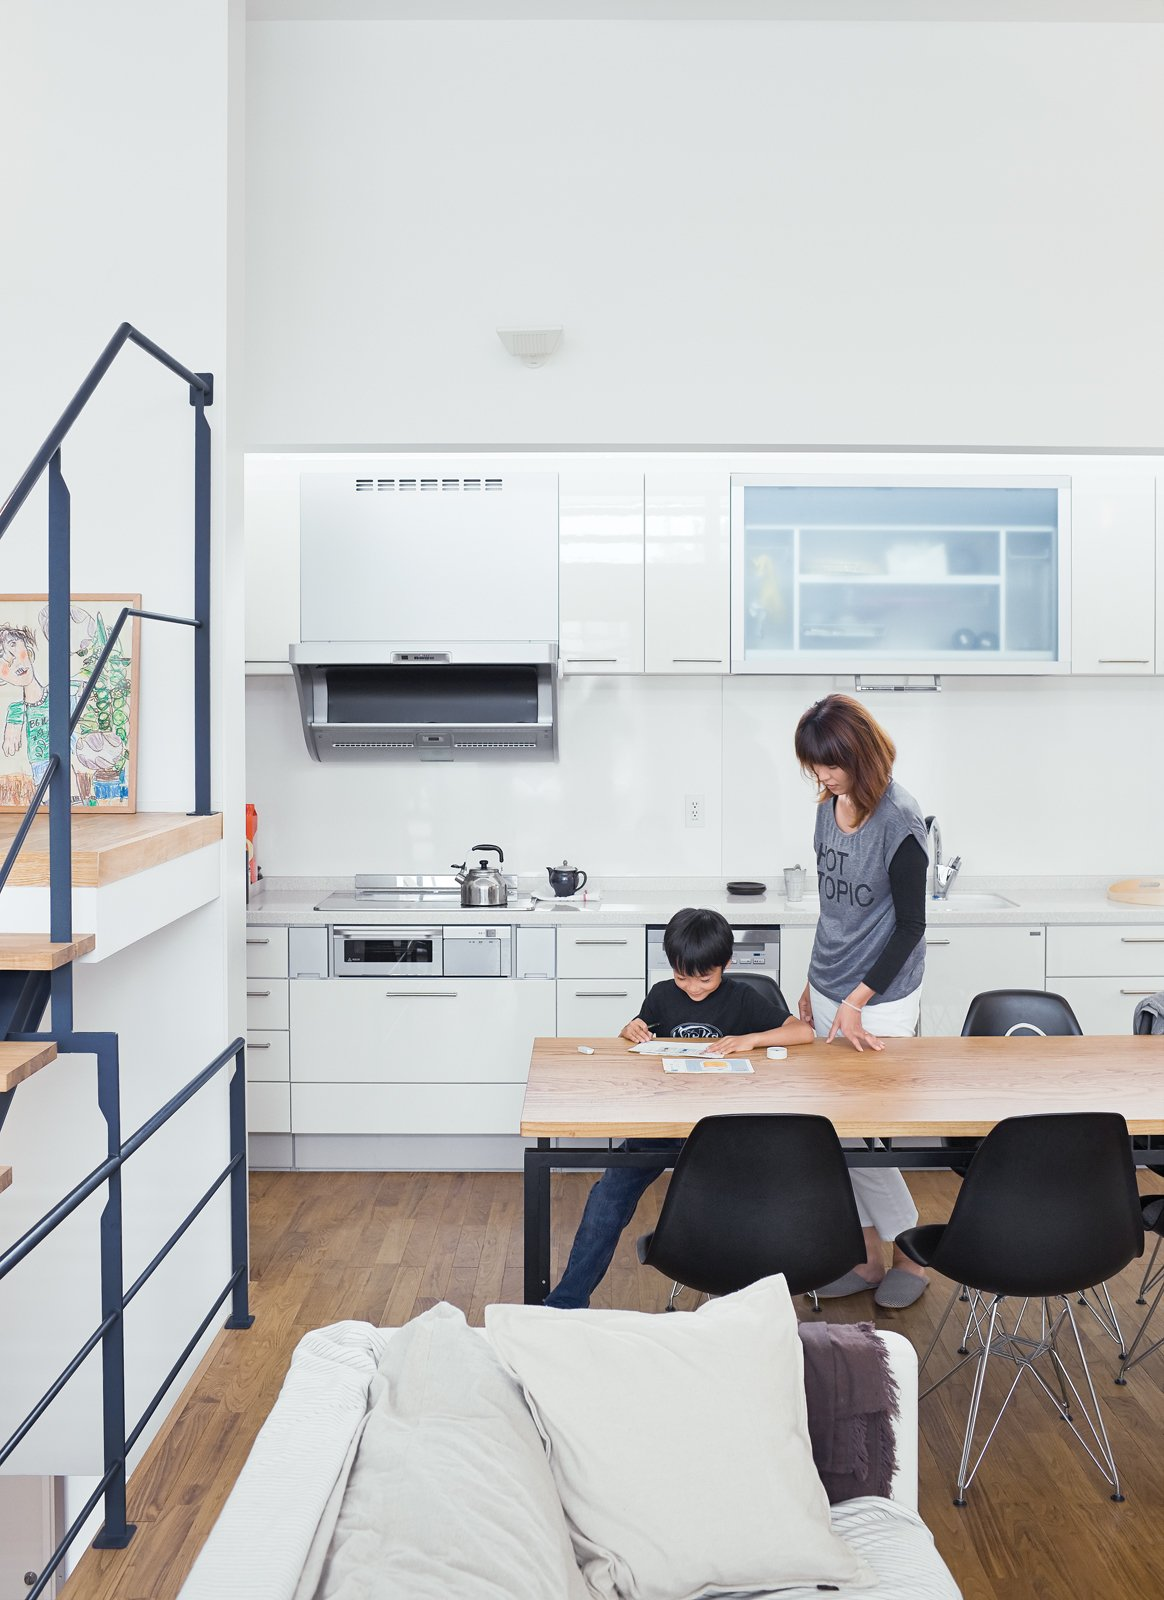 Great Modern Interiors in Japan Collection of 8 Photos by Erika Heet ...